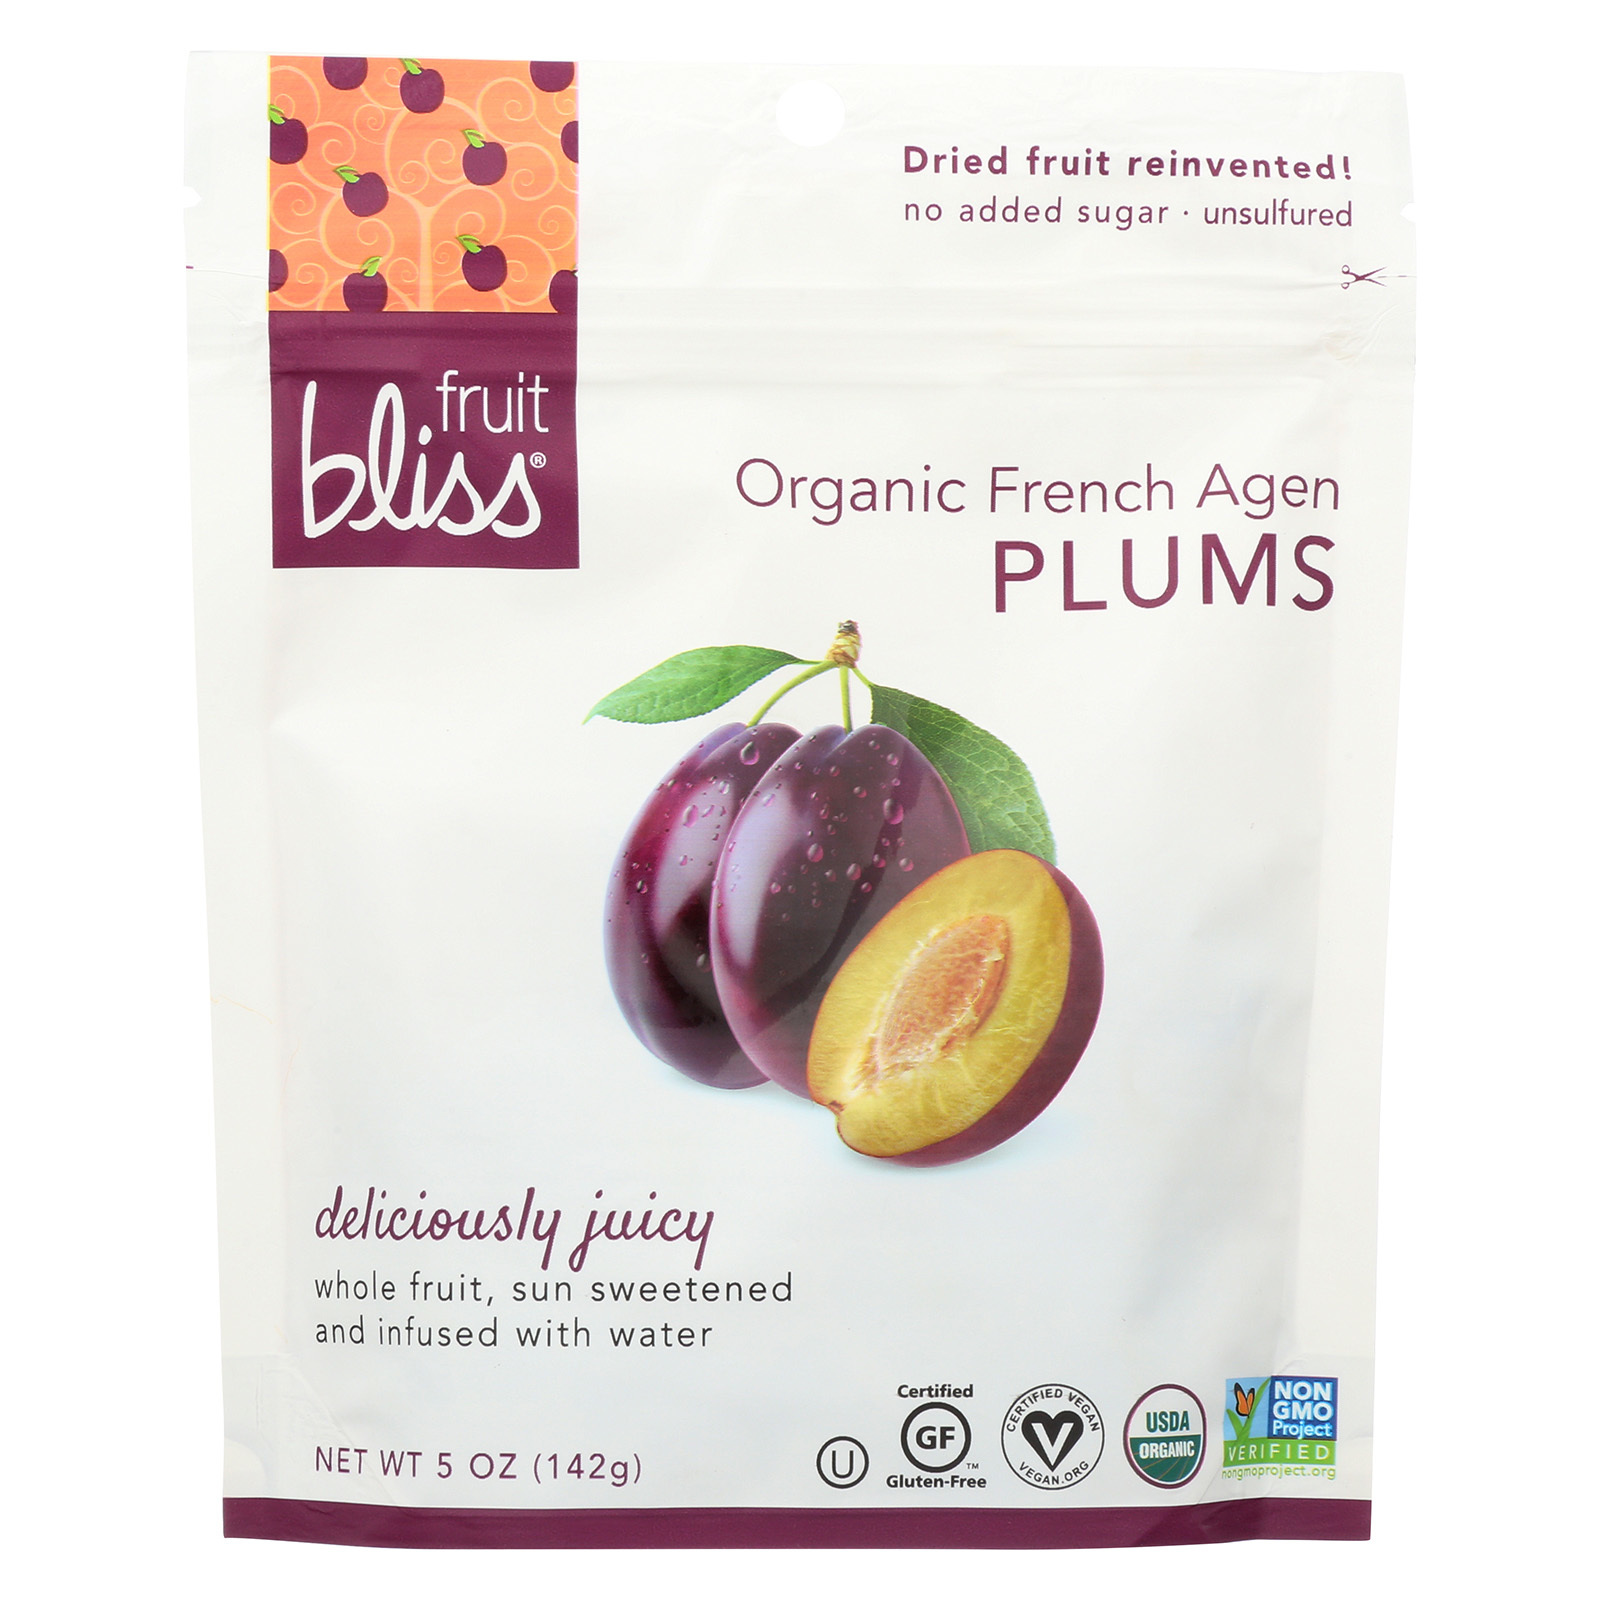 Fruit Bliss Organic French Agen Plums - Plums - Case of 6 - 5 oz.